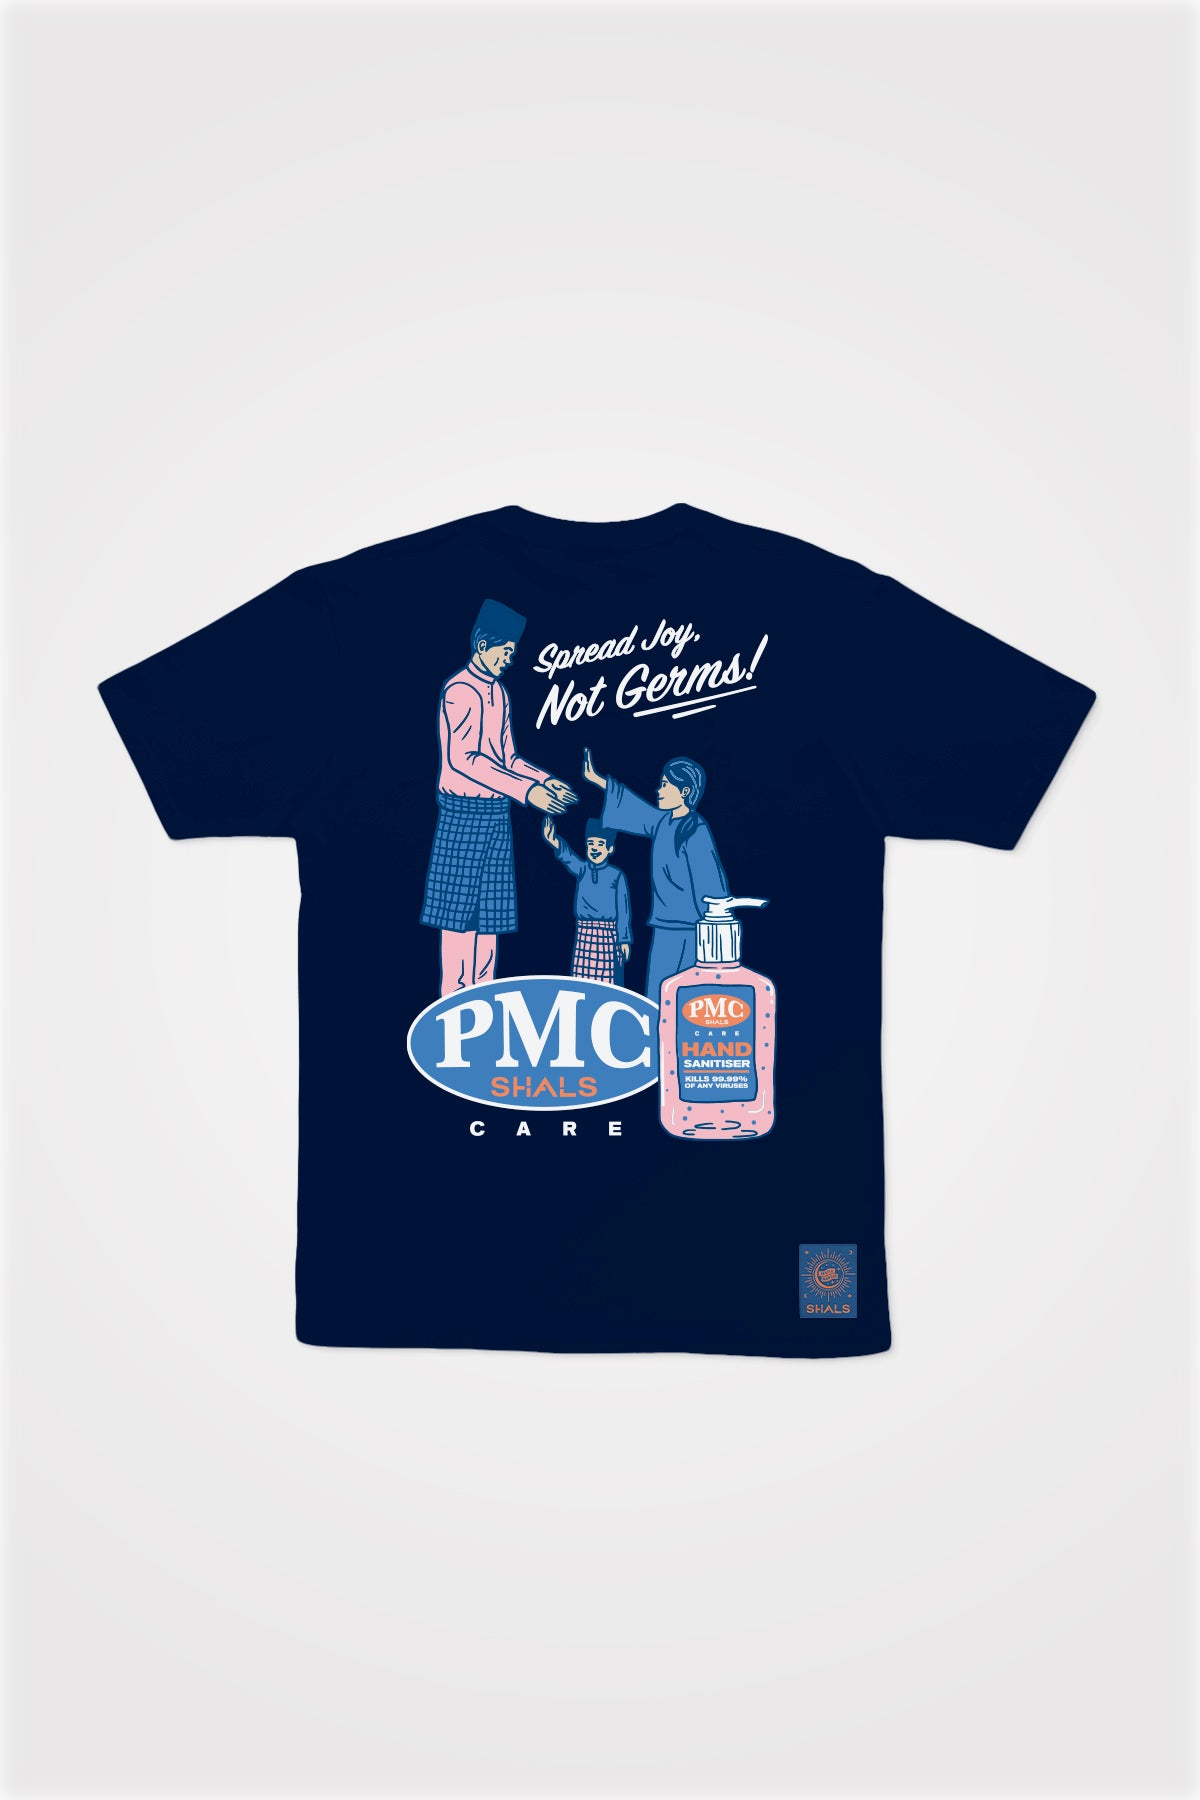 PMC x SHALS Sanitizer Tee in Navy Blue